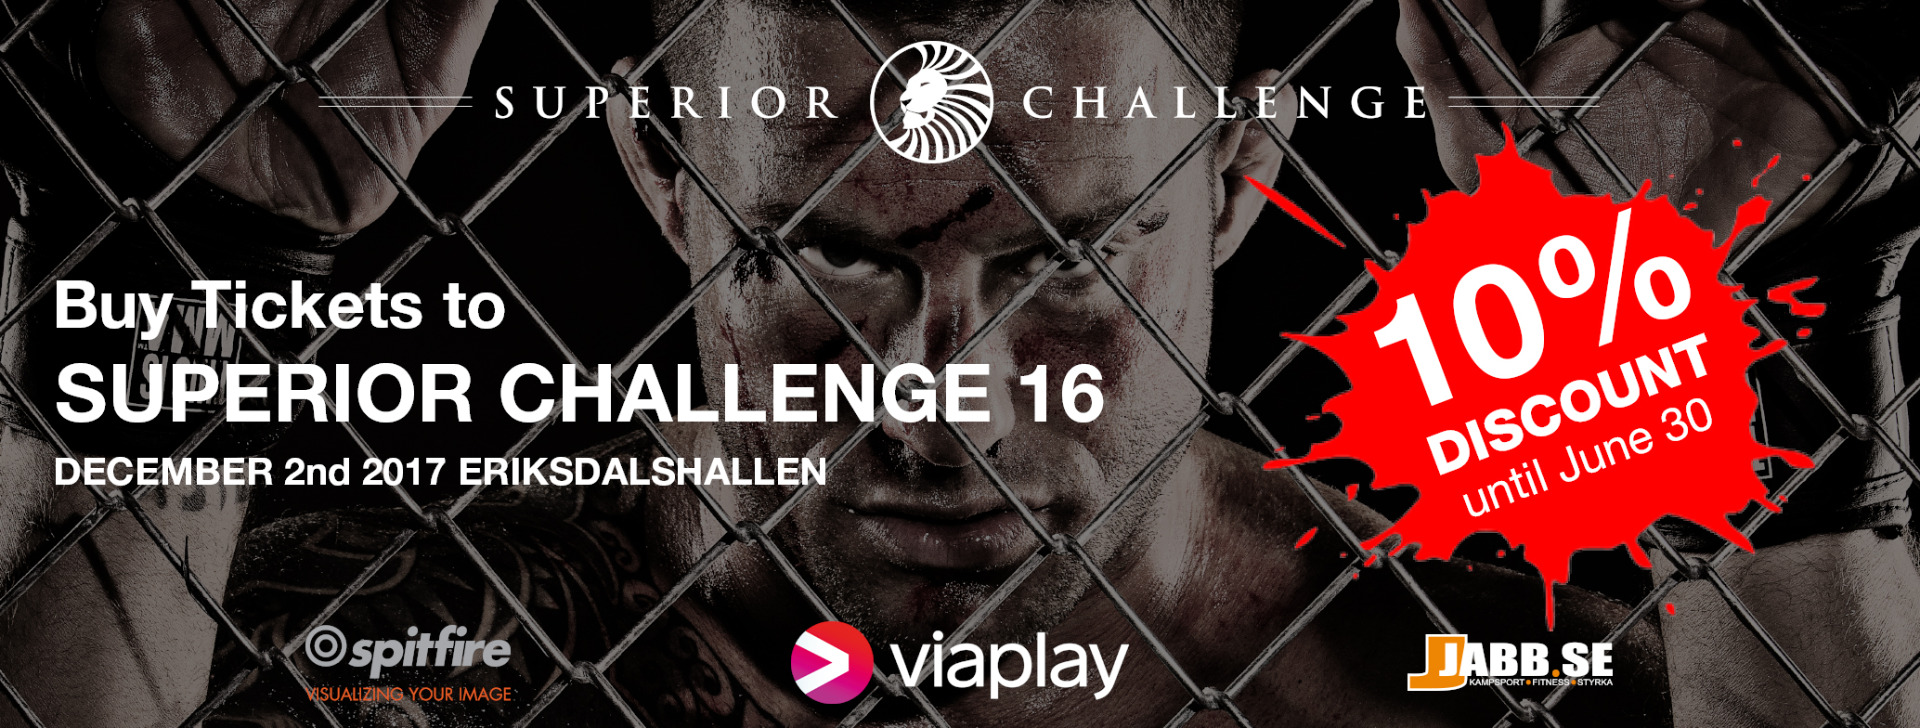 Buy Tickets to Superior Challenge 16